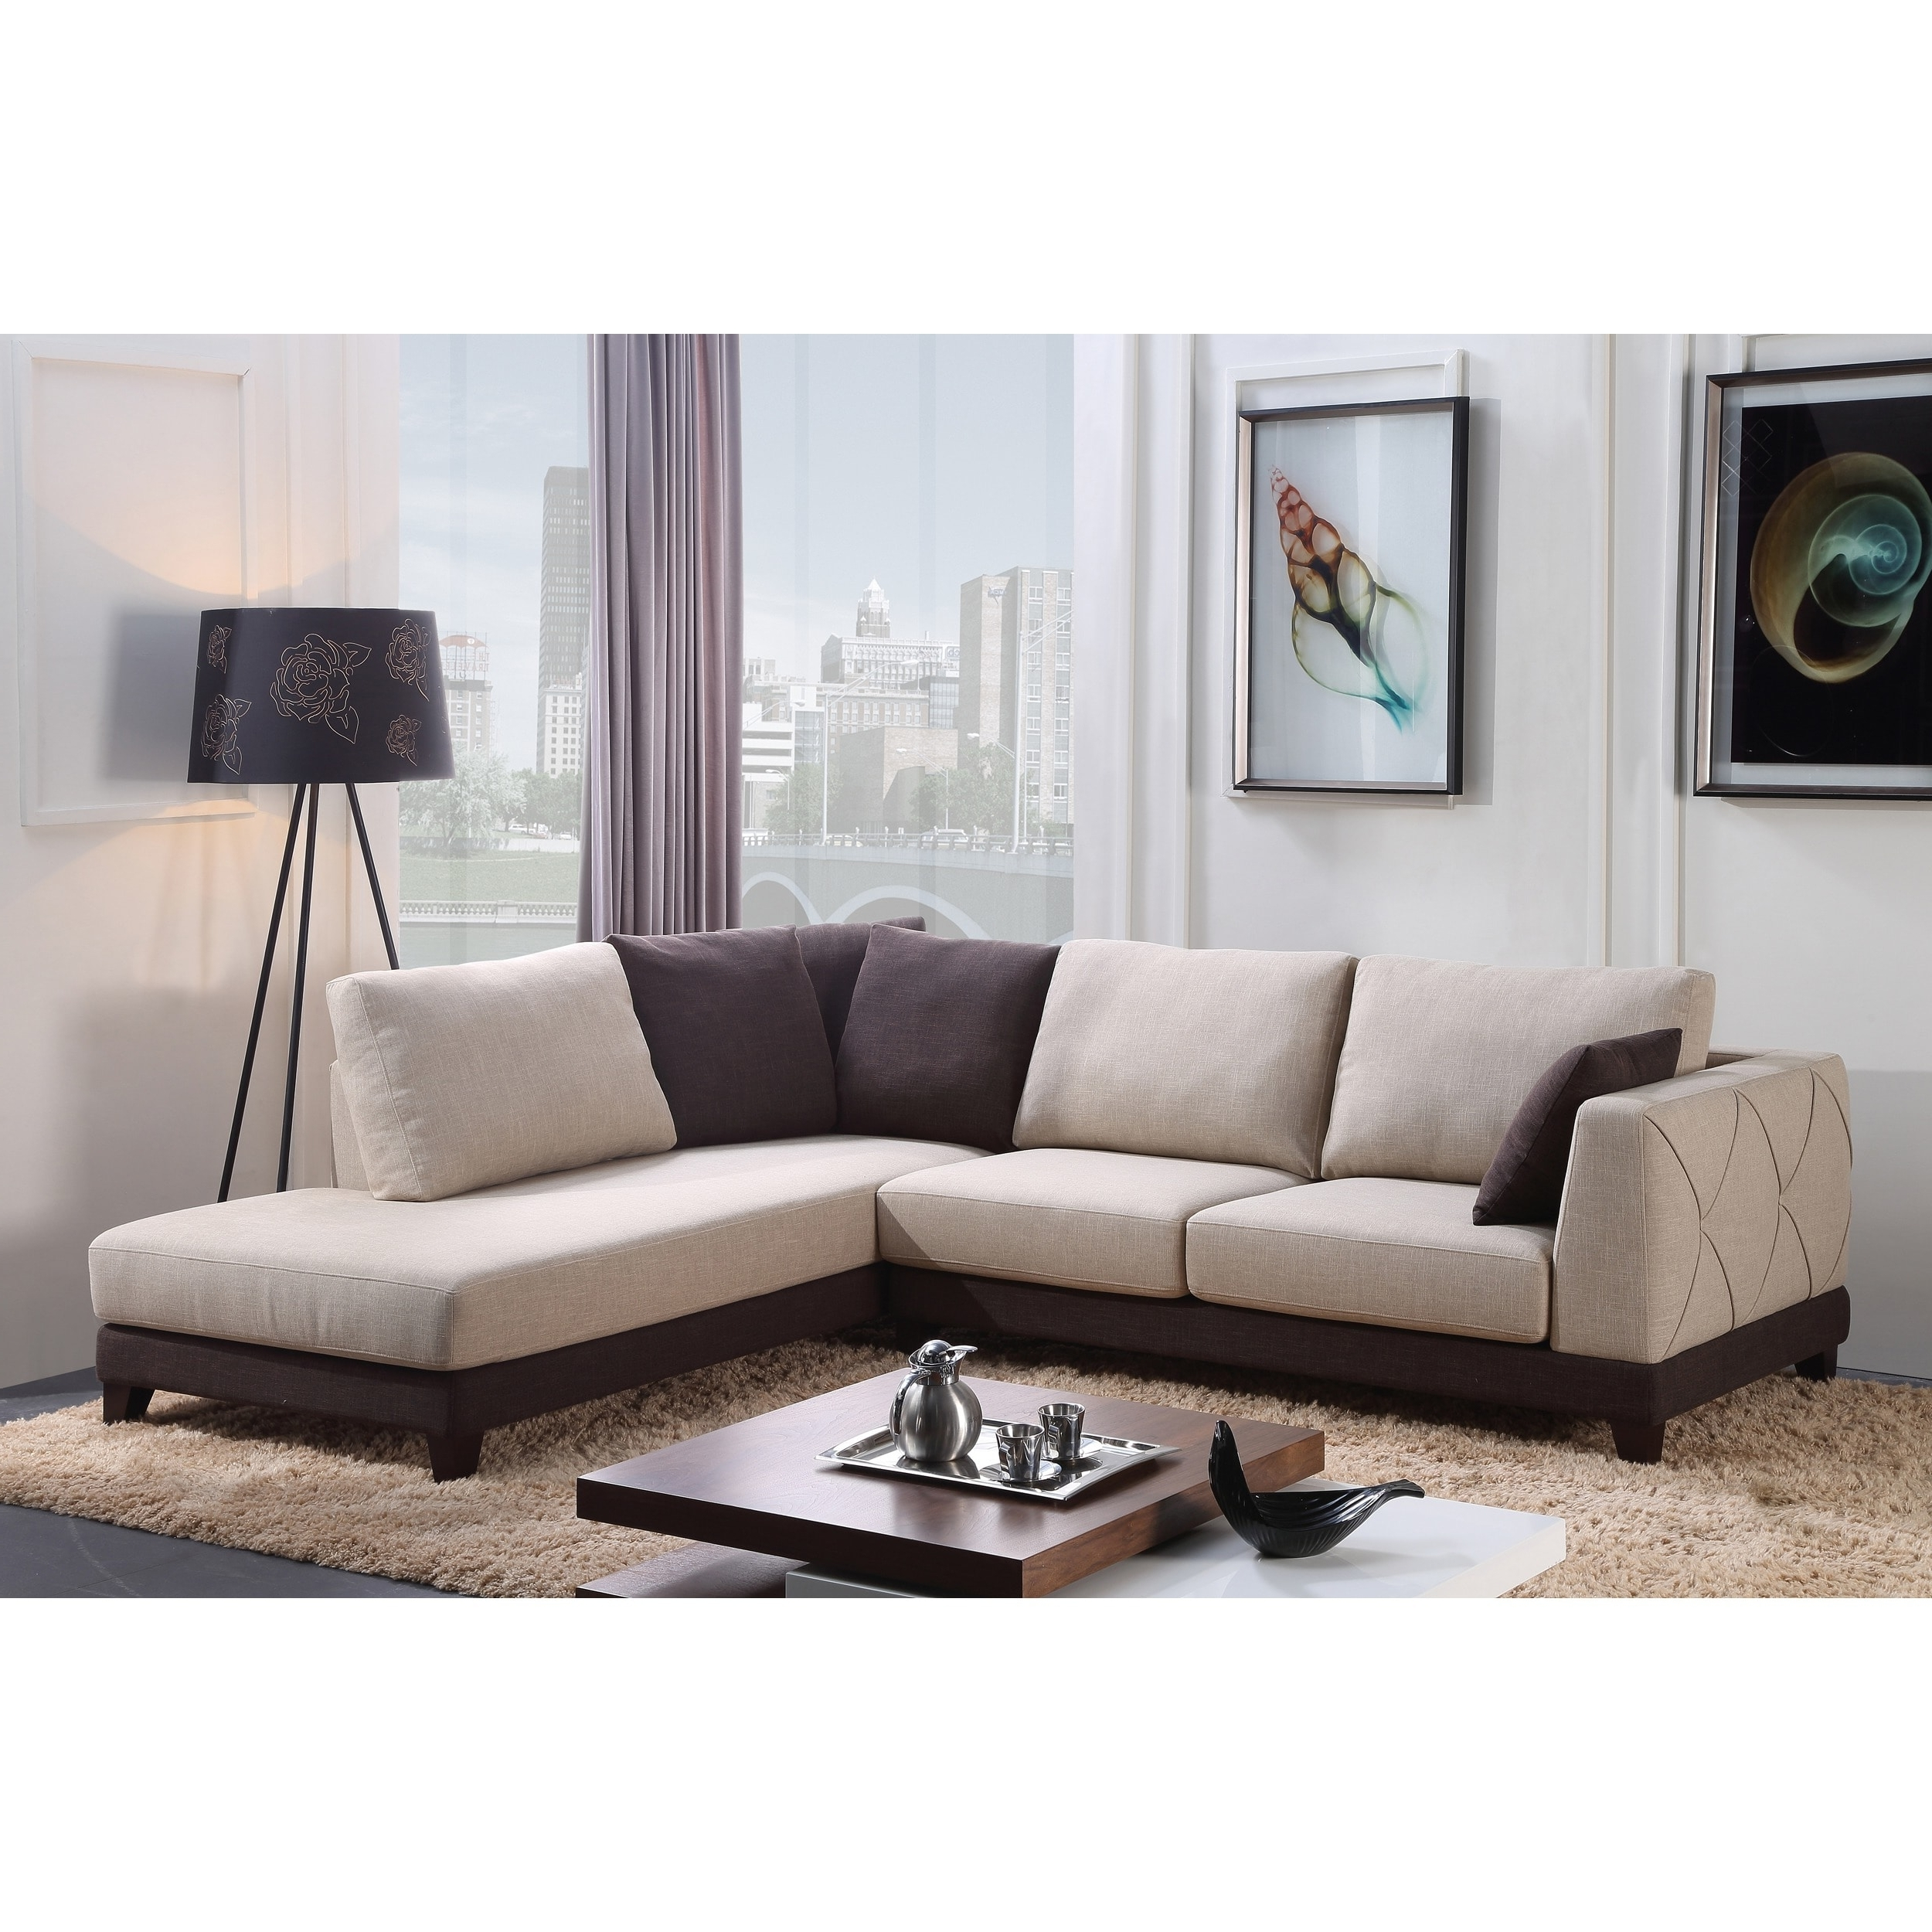 Abbyson 'verona' Fabric Sectional Sofa – Free Shipping Today For Well Known Abbyson Sectional Sofas (View 2 of 20)